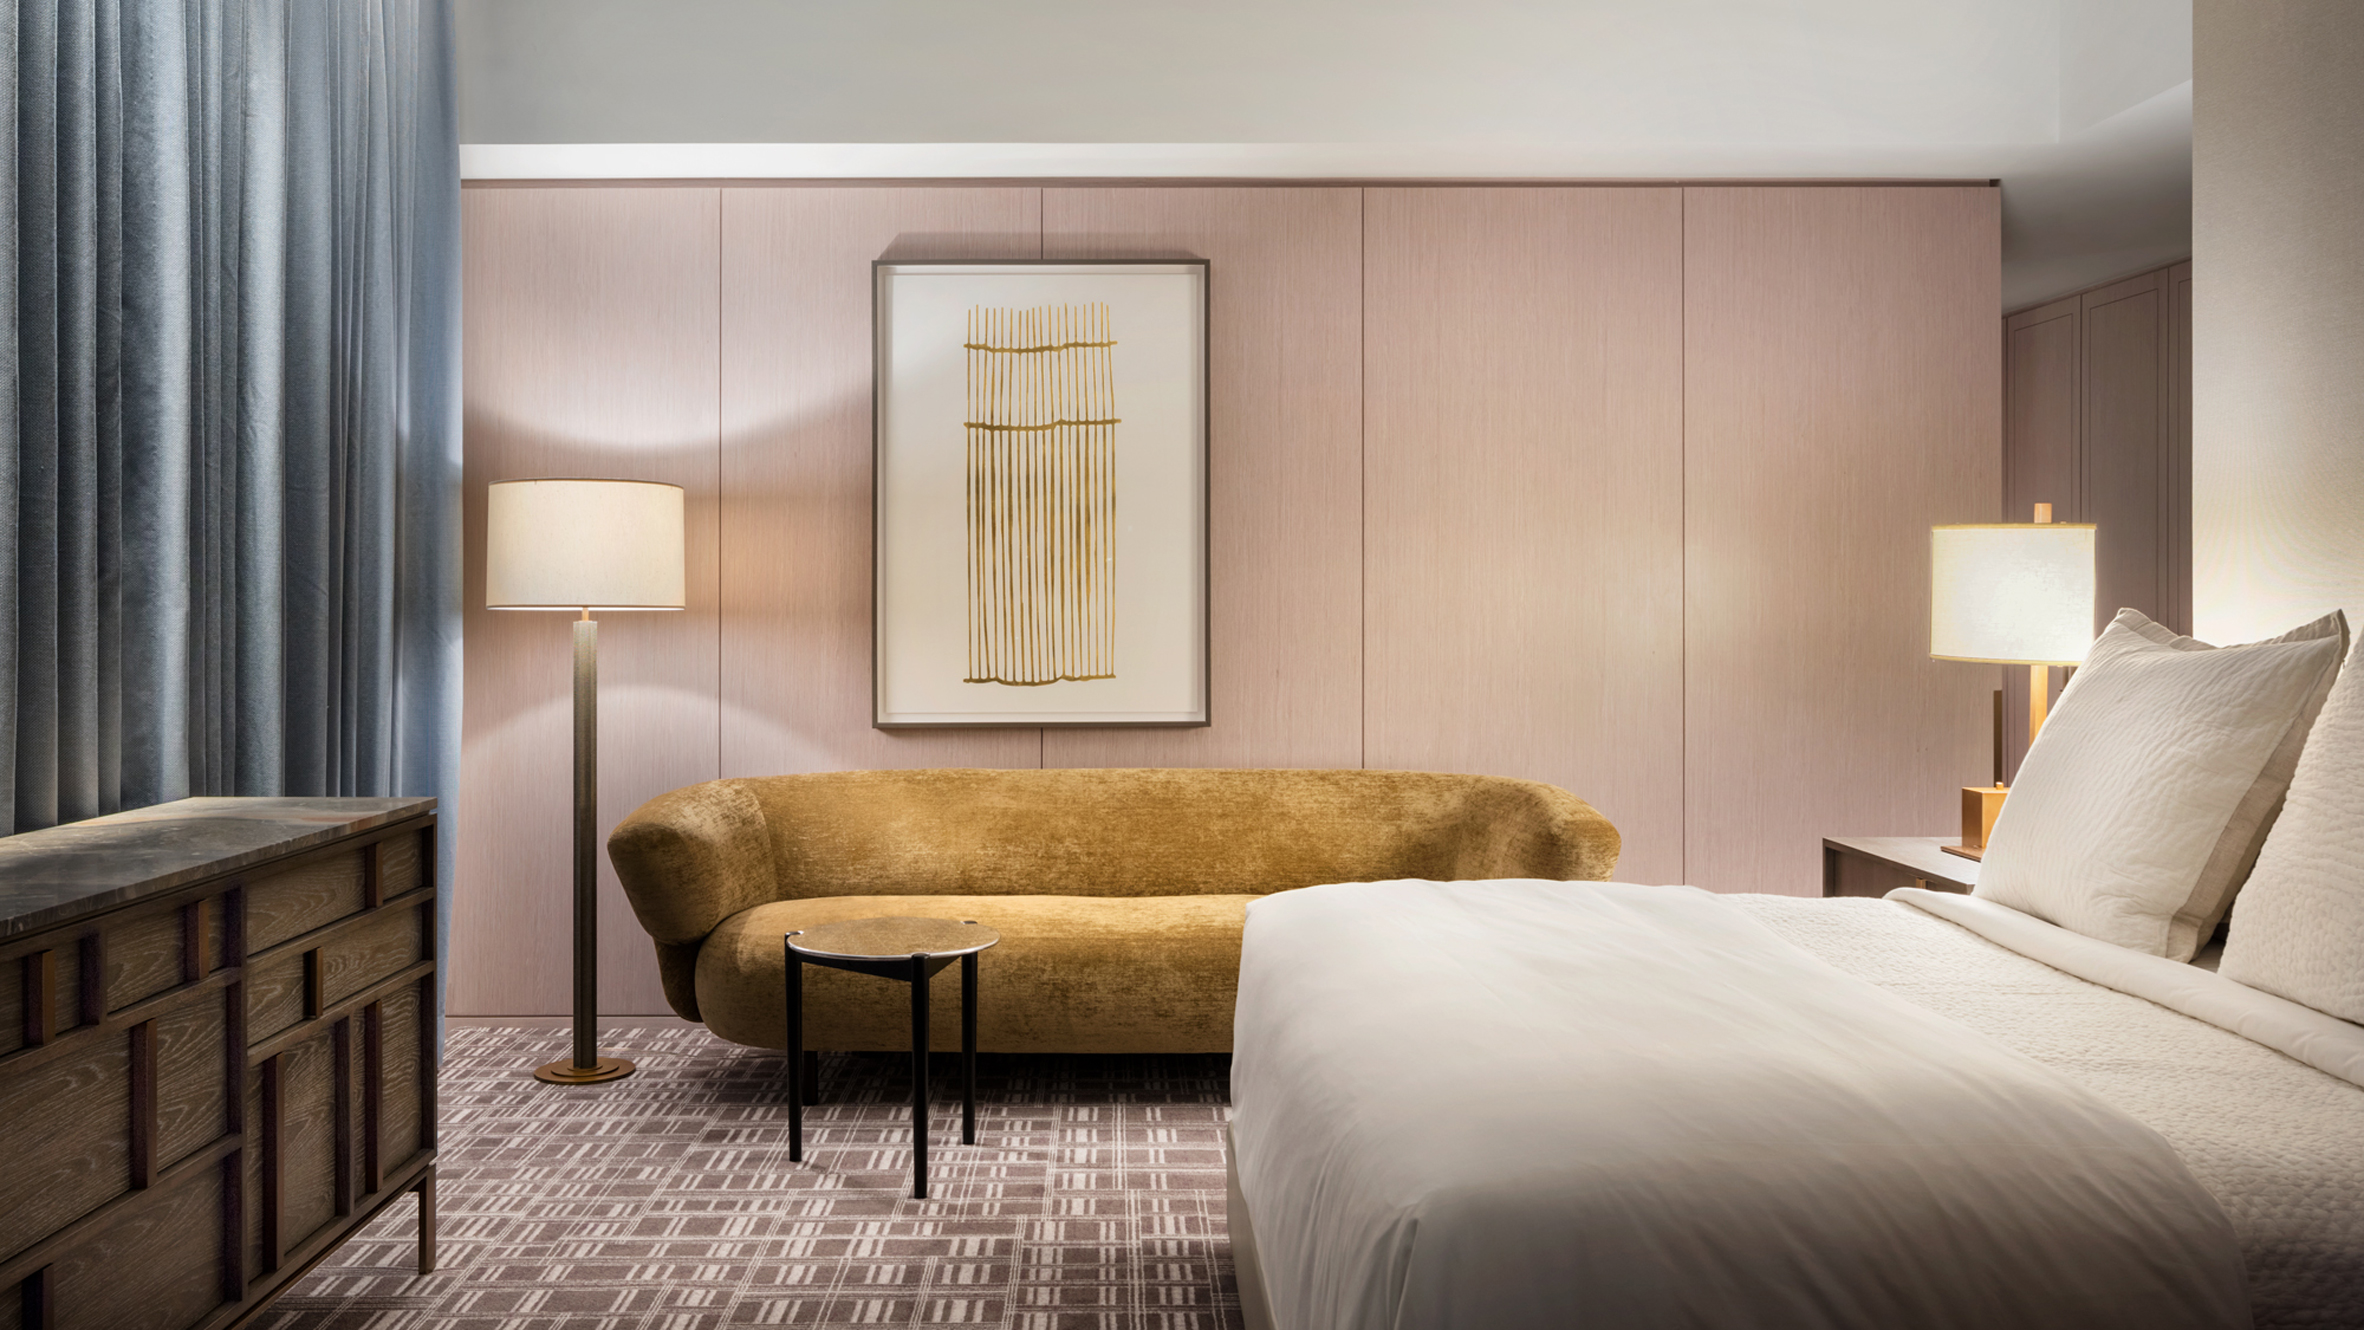 New York Accessories For Bedroom Yabu Pushelberg Uses Muted Hues At Four Seasons Downtown New York